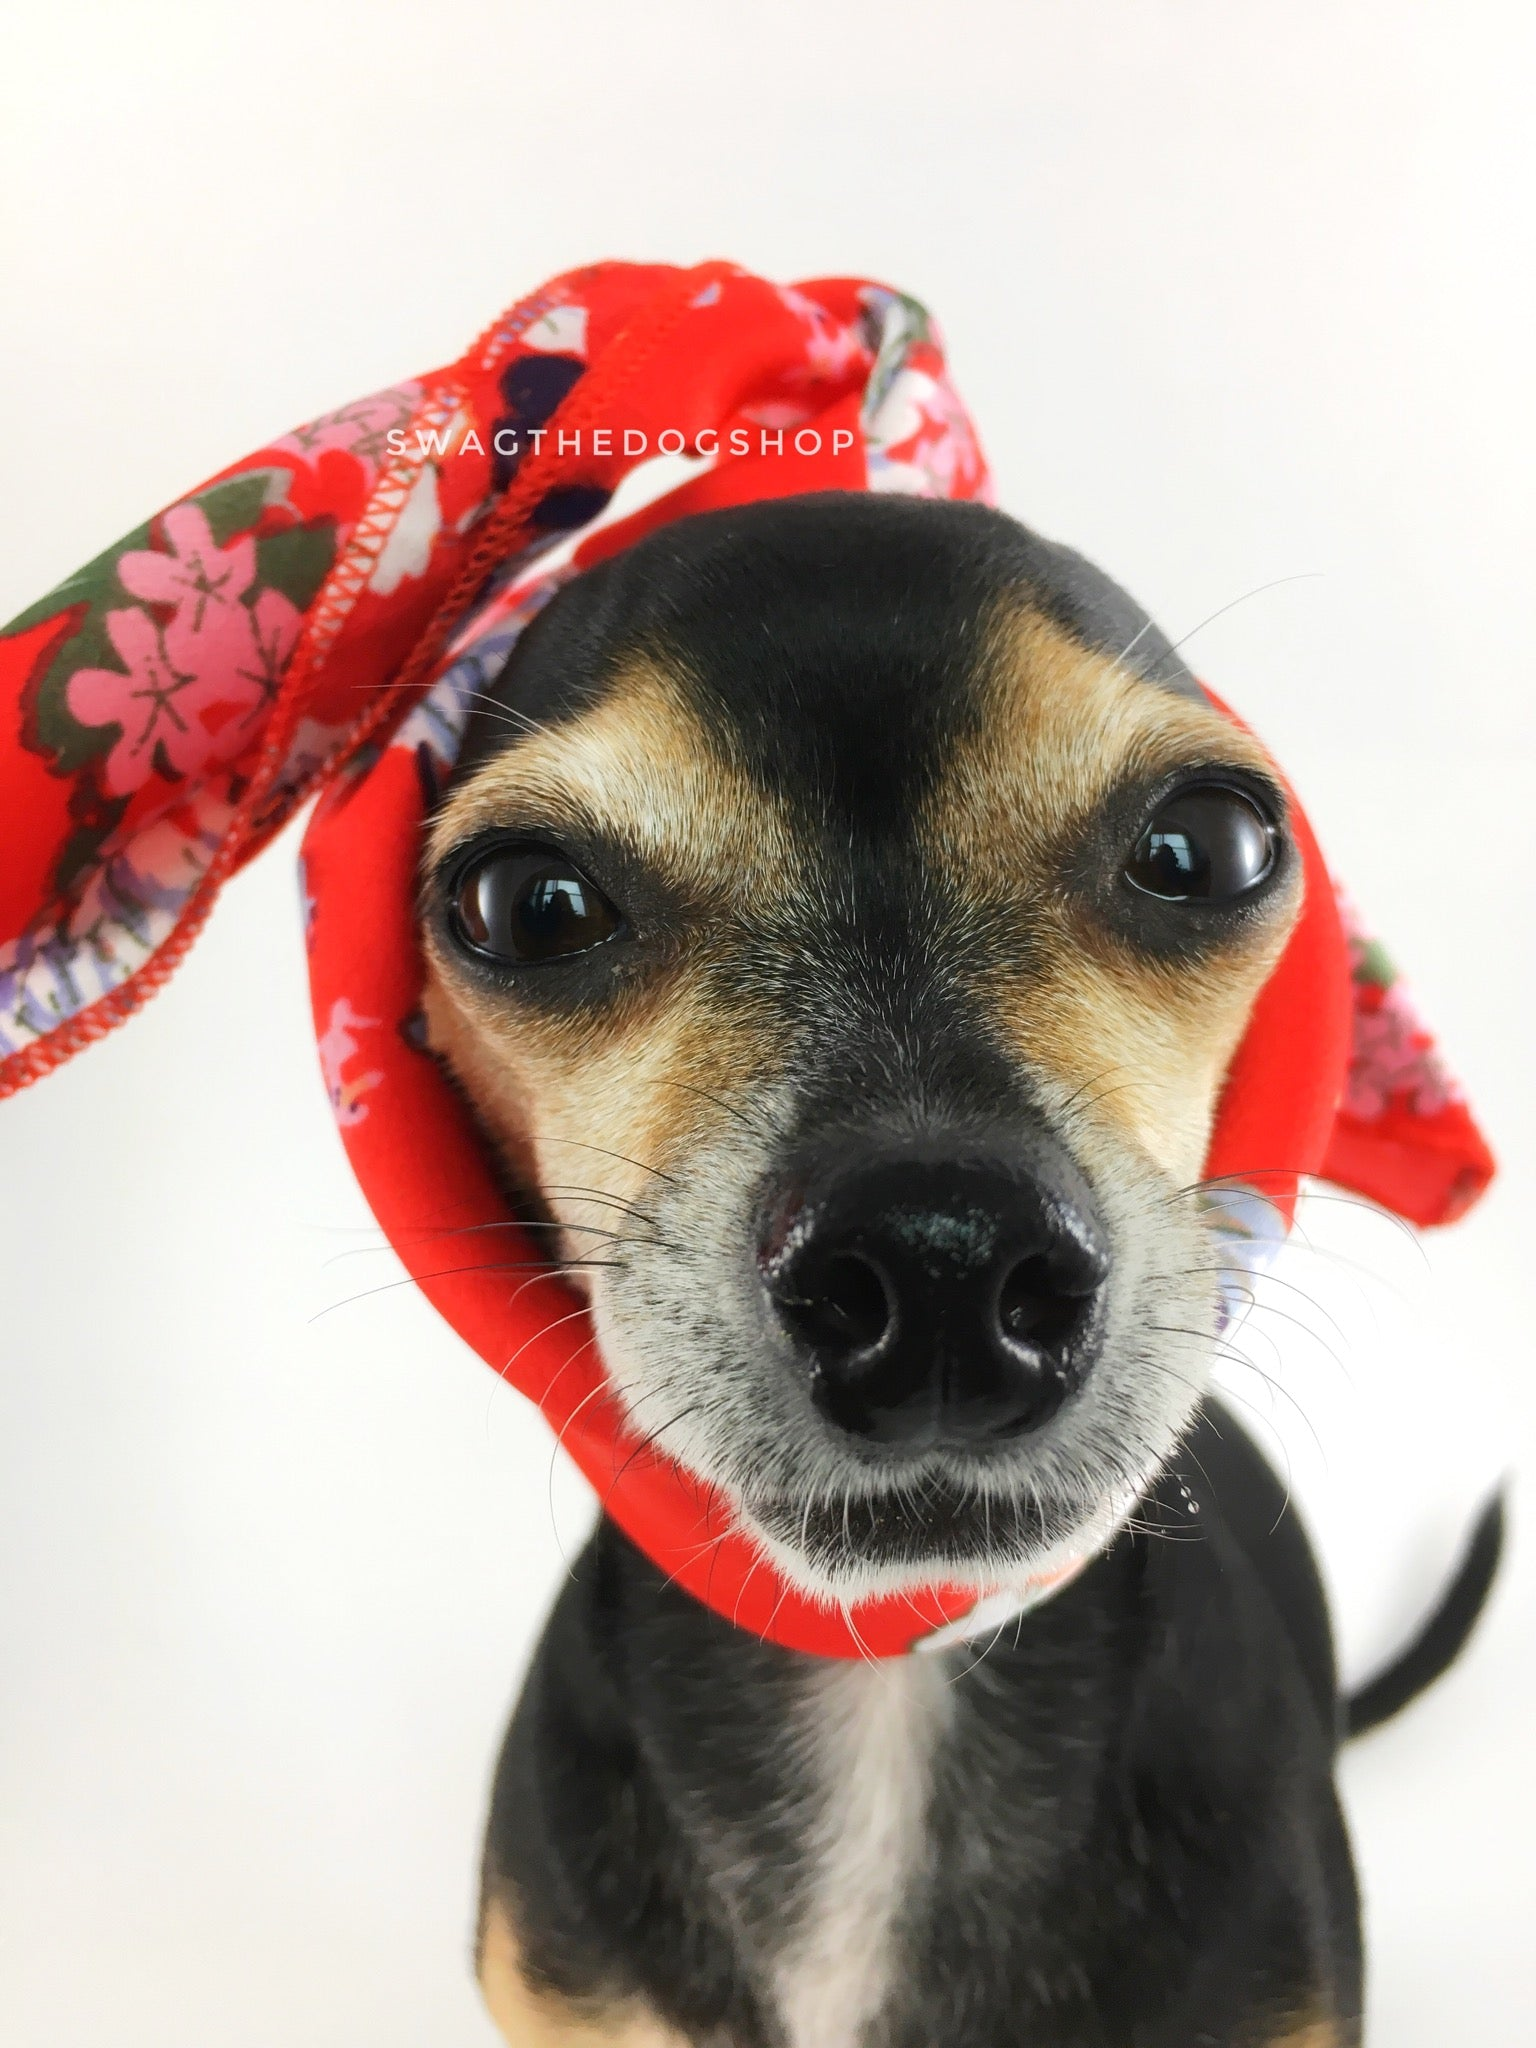 Red Wild Flowers Swagdana Scarf - Bust of Cute Chihuahua Wearing Swagdana Scarf as Headband. Dog Bandana. Dog Scarf.